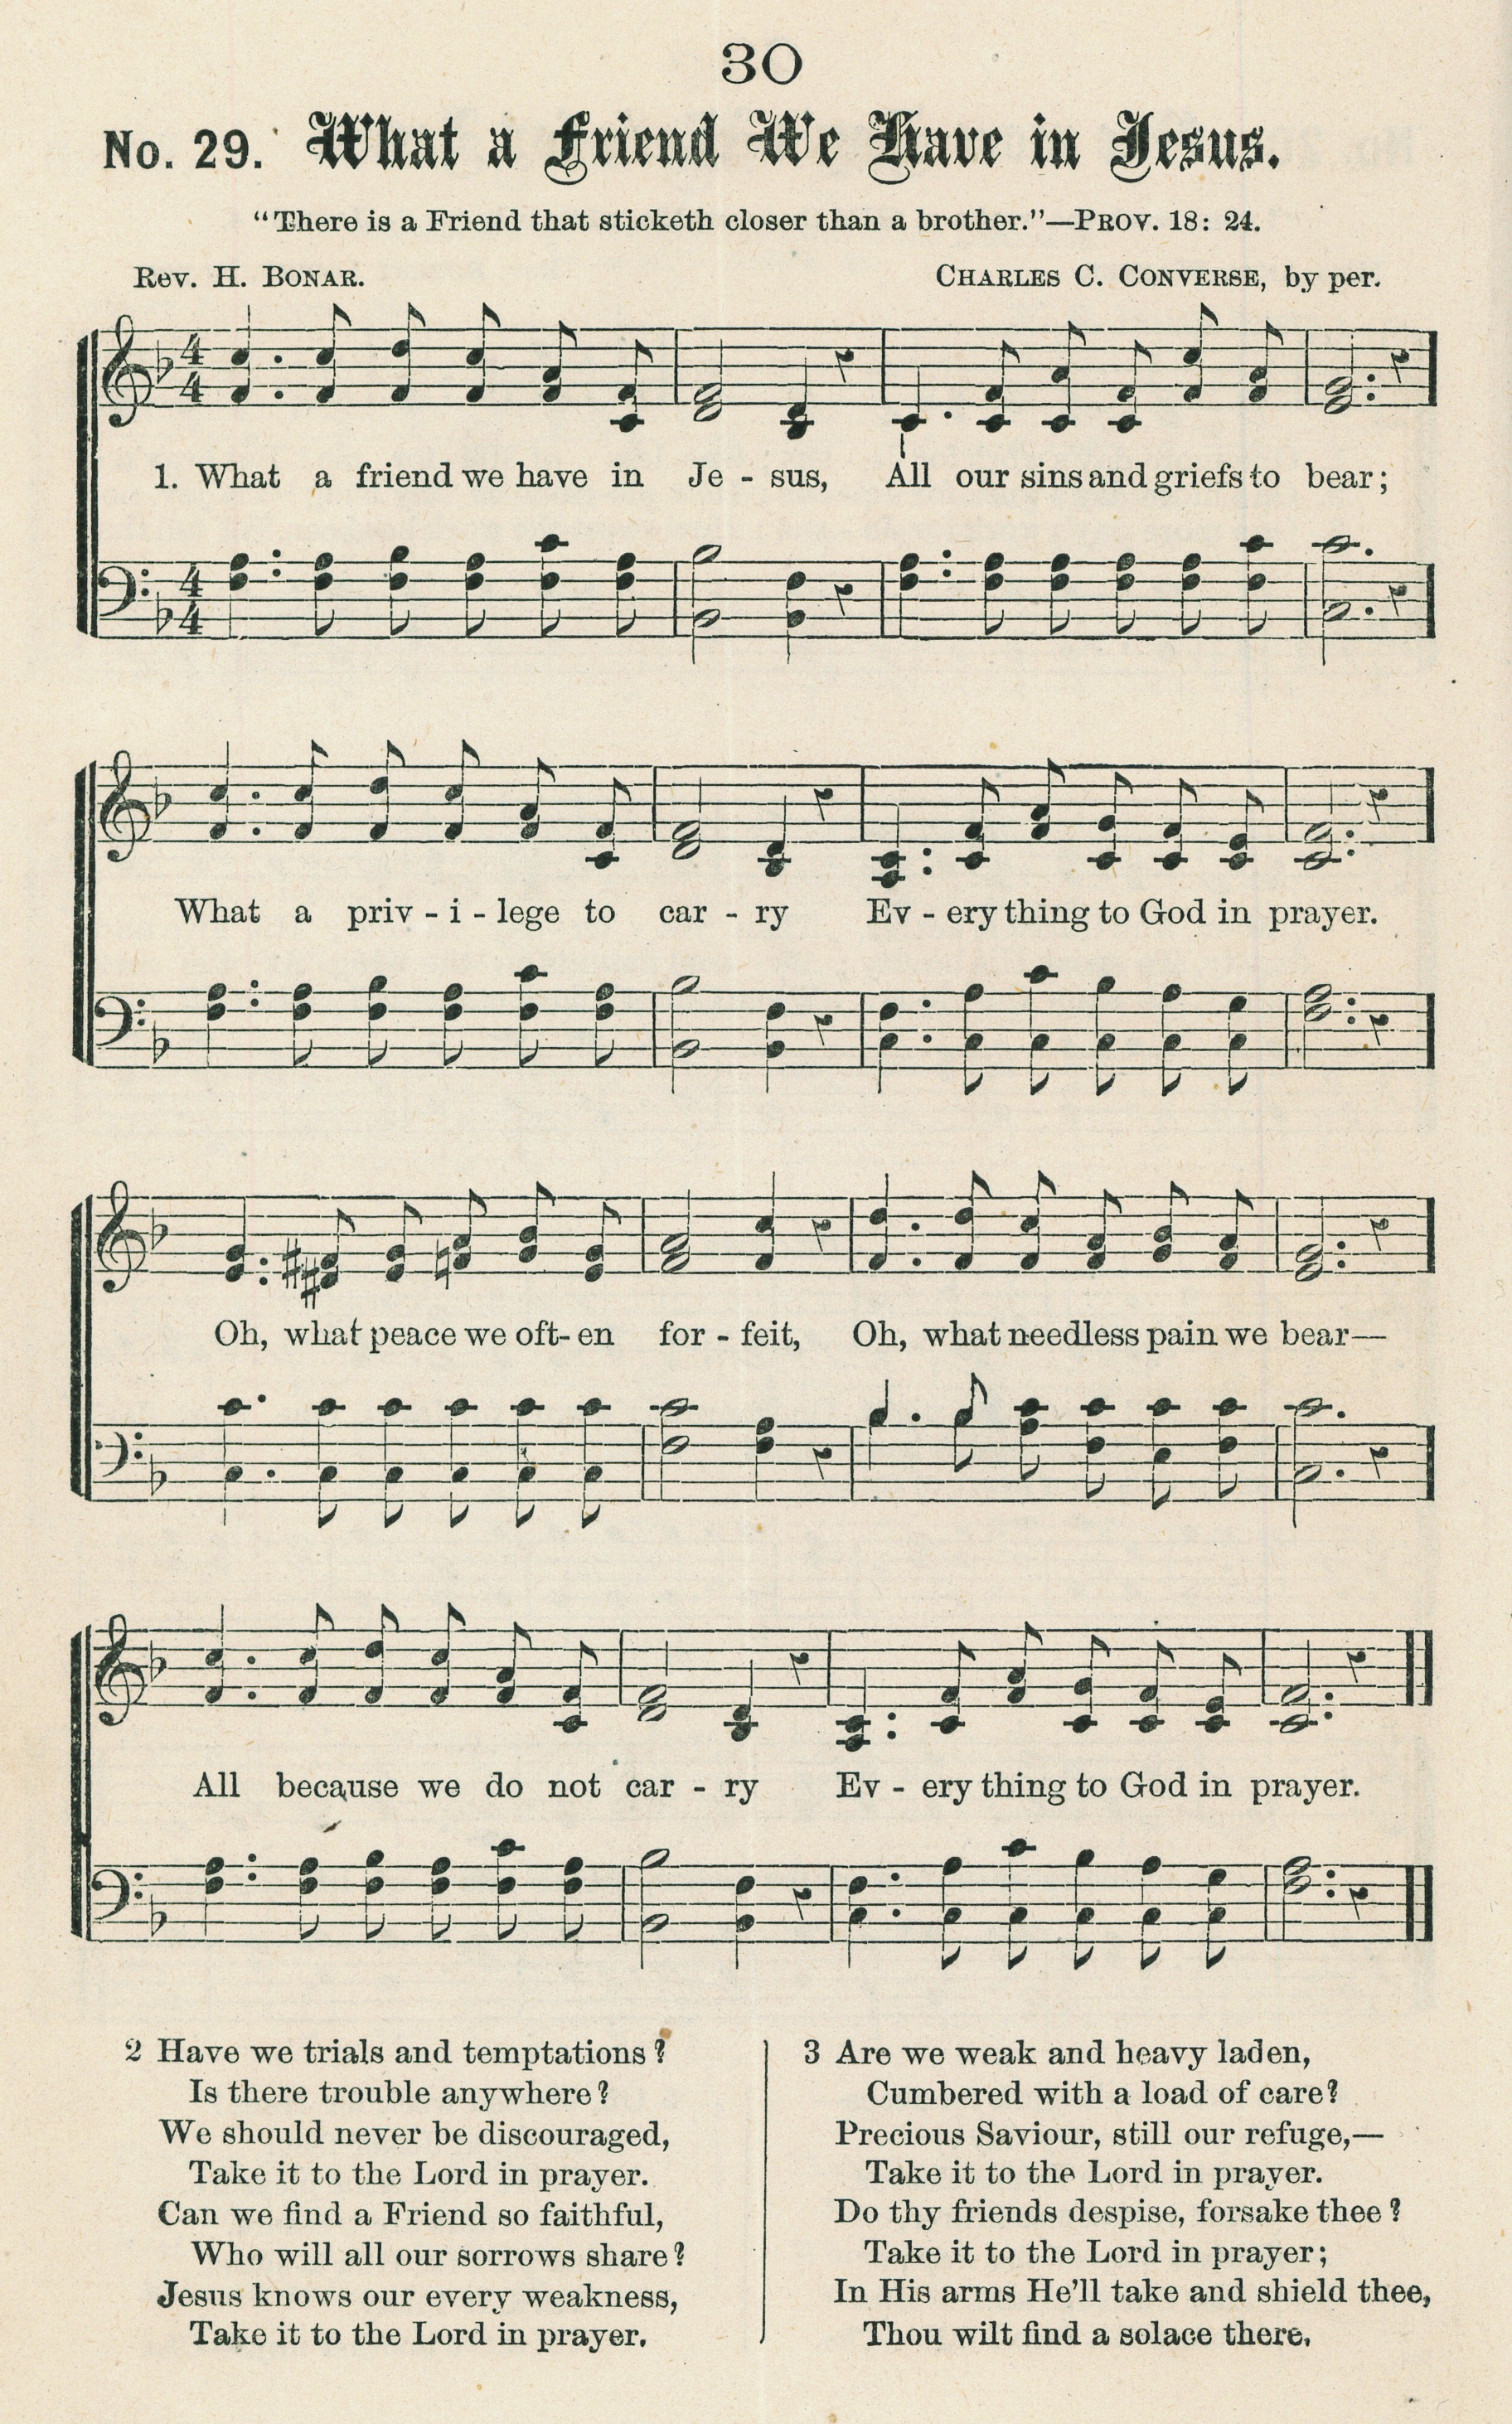 Fig. 4.   Gospel Hymns and Sacred Songs  (Chicago: Biglow & Main, 1875).